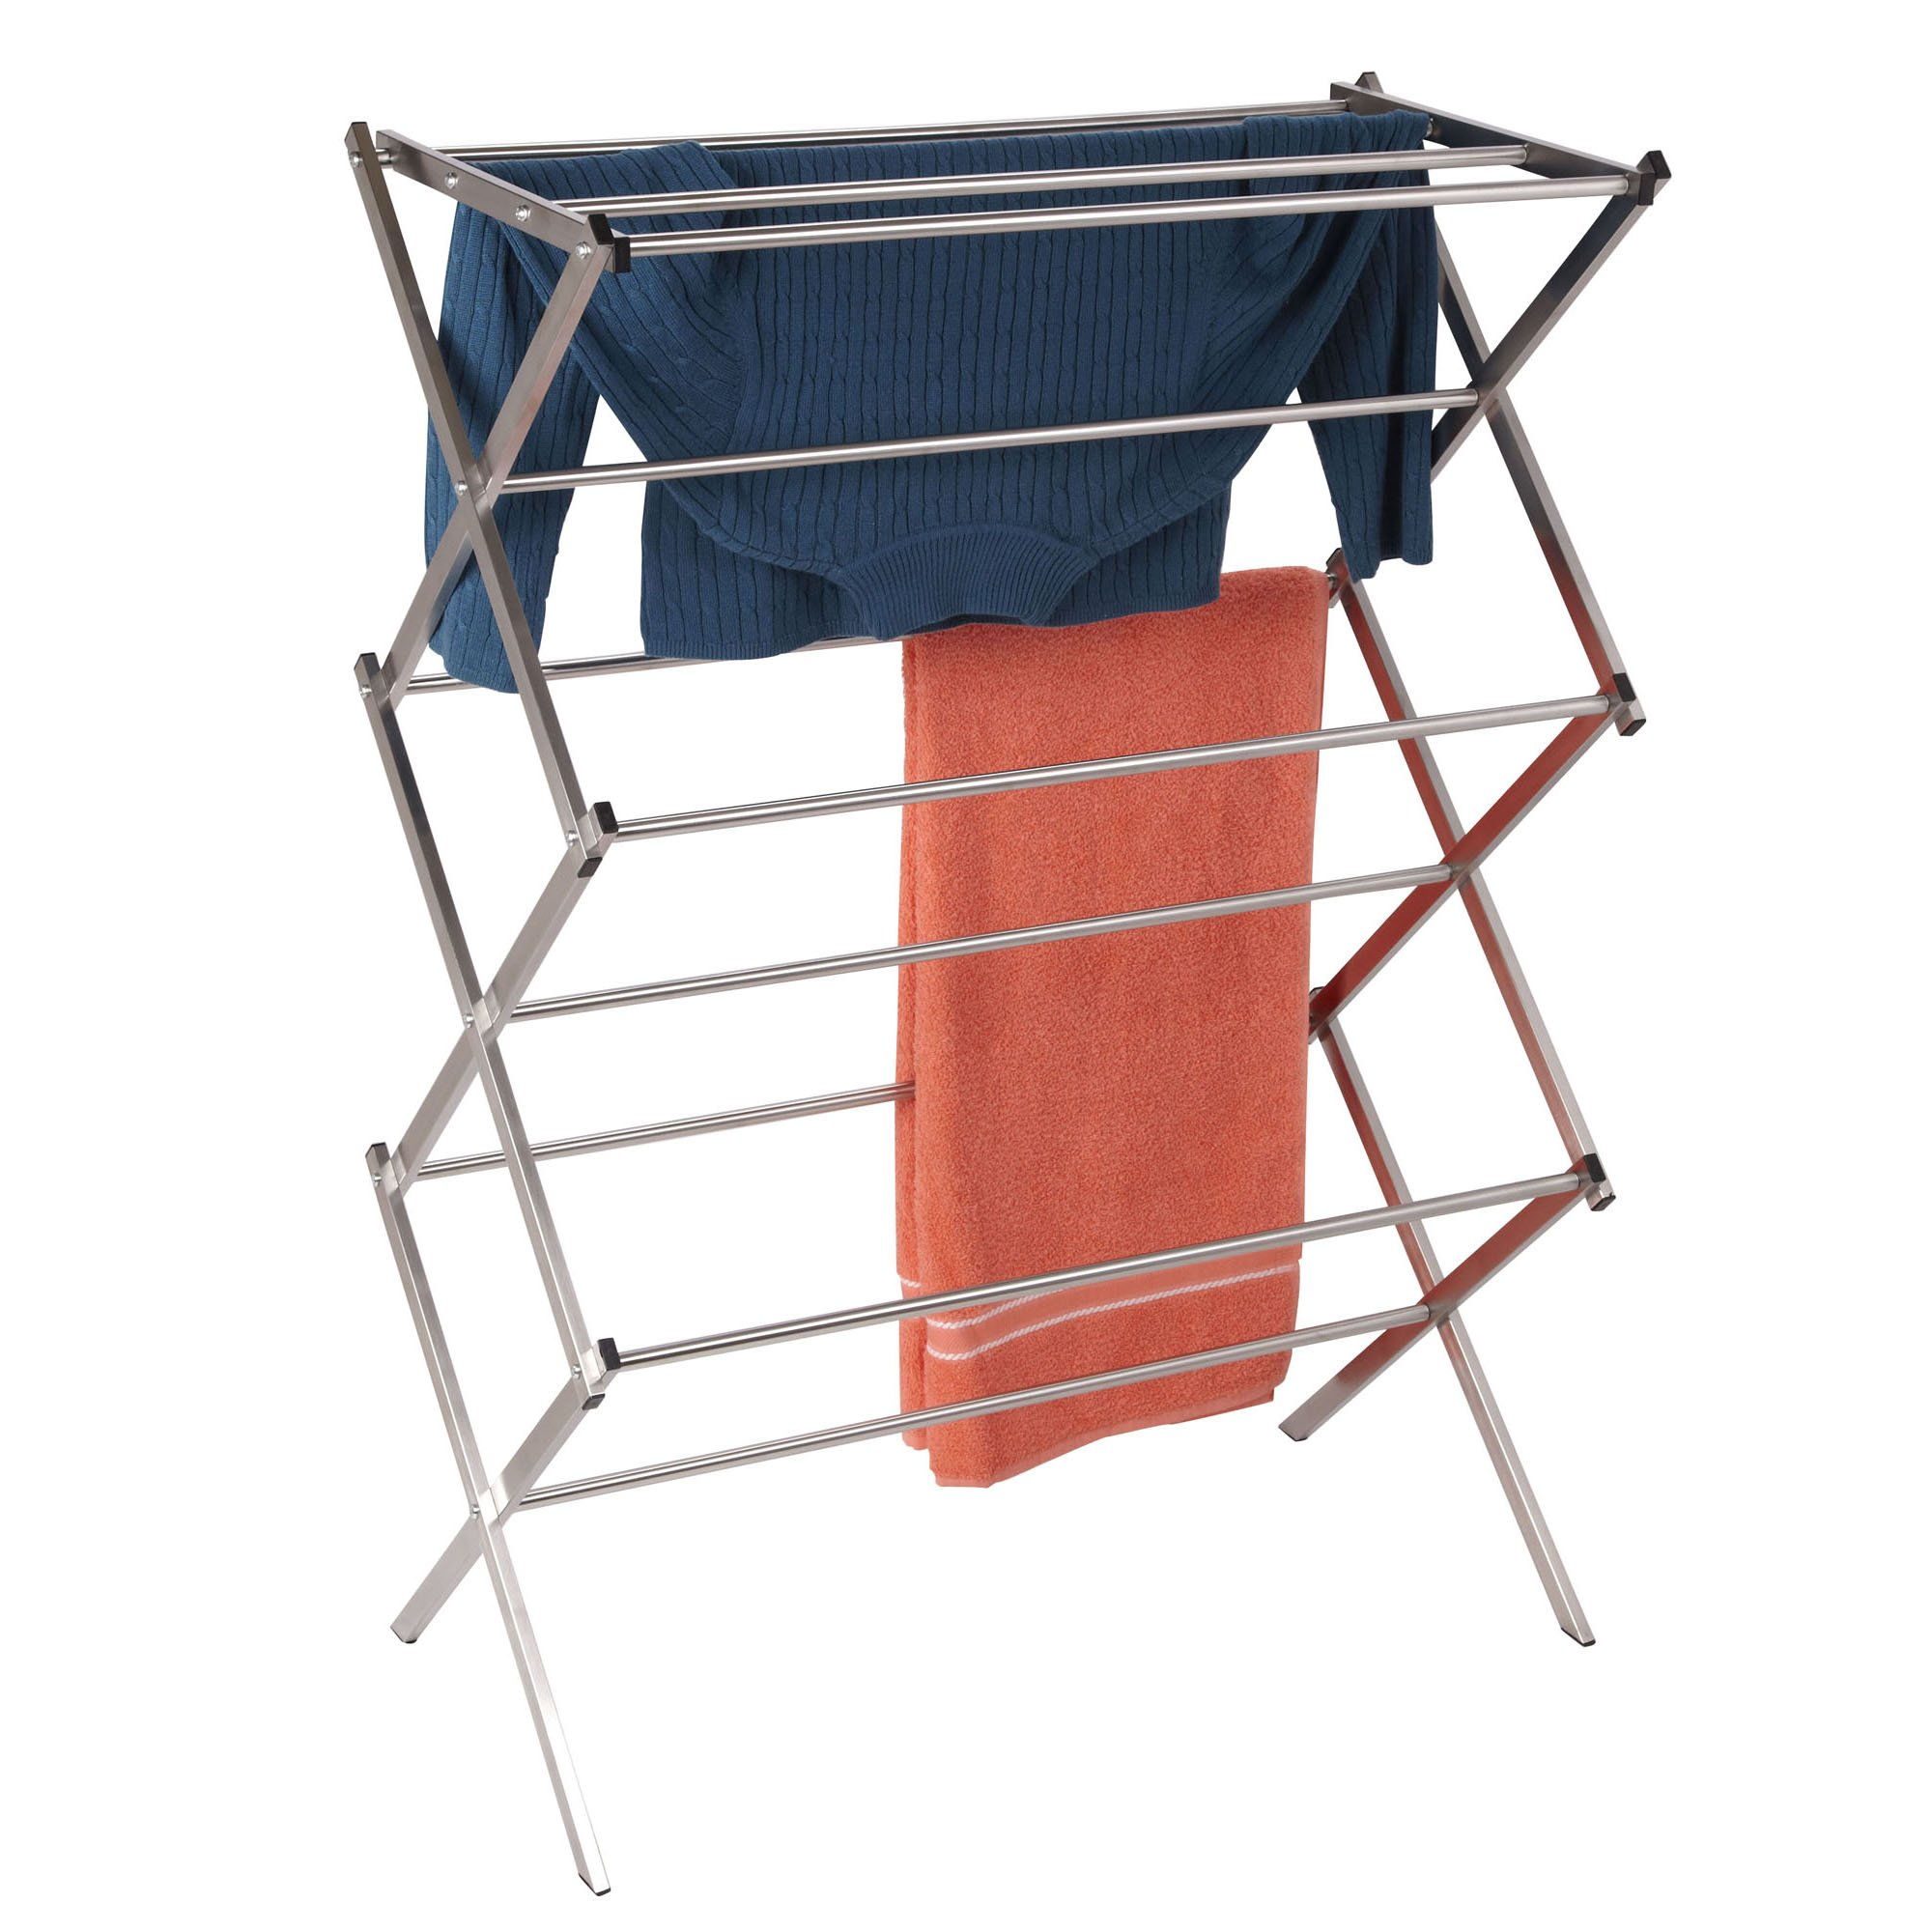 Household Essentials Folding X-Frame Clothes Dryer, Stainless Steel by Household Essentials (Image #5)